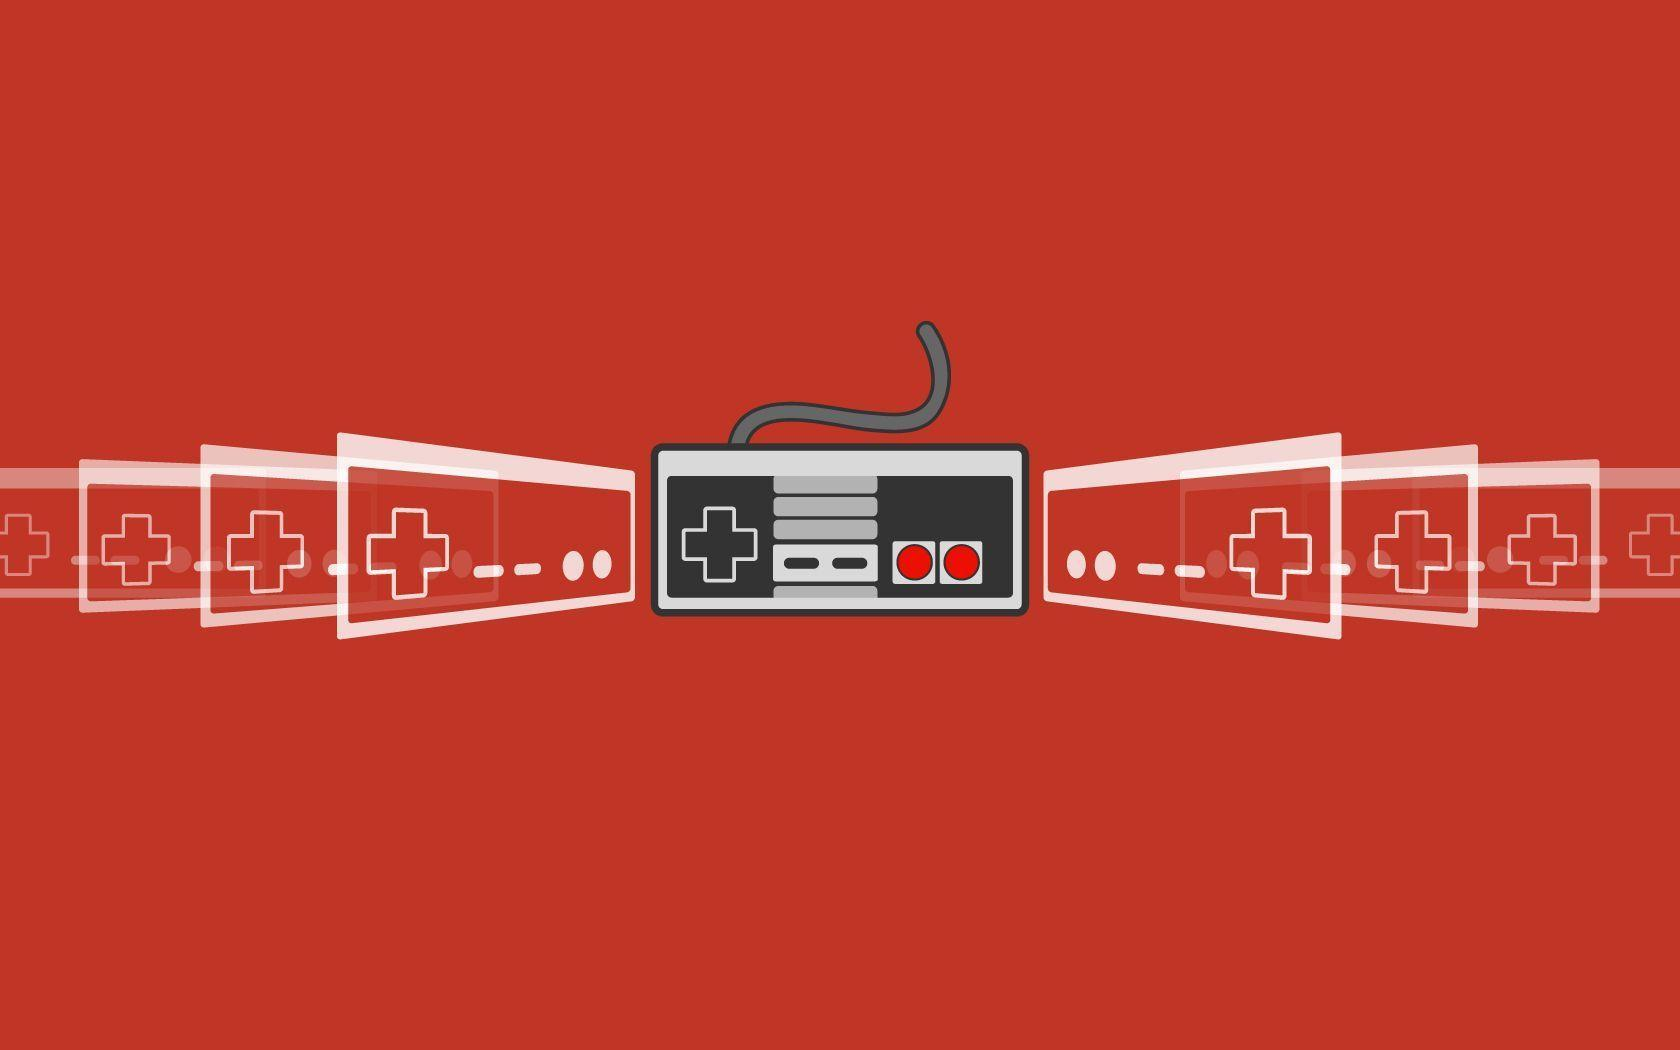 Nintendo Wallpaper Android | Large HD Wallpaper Database